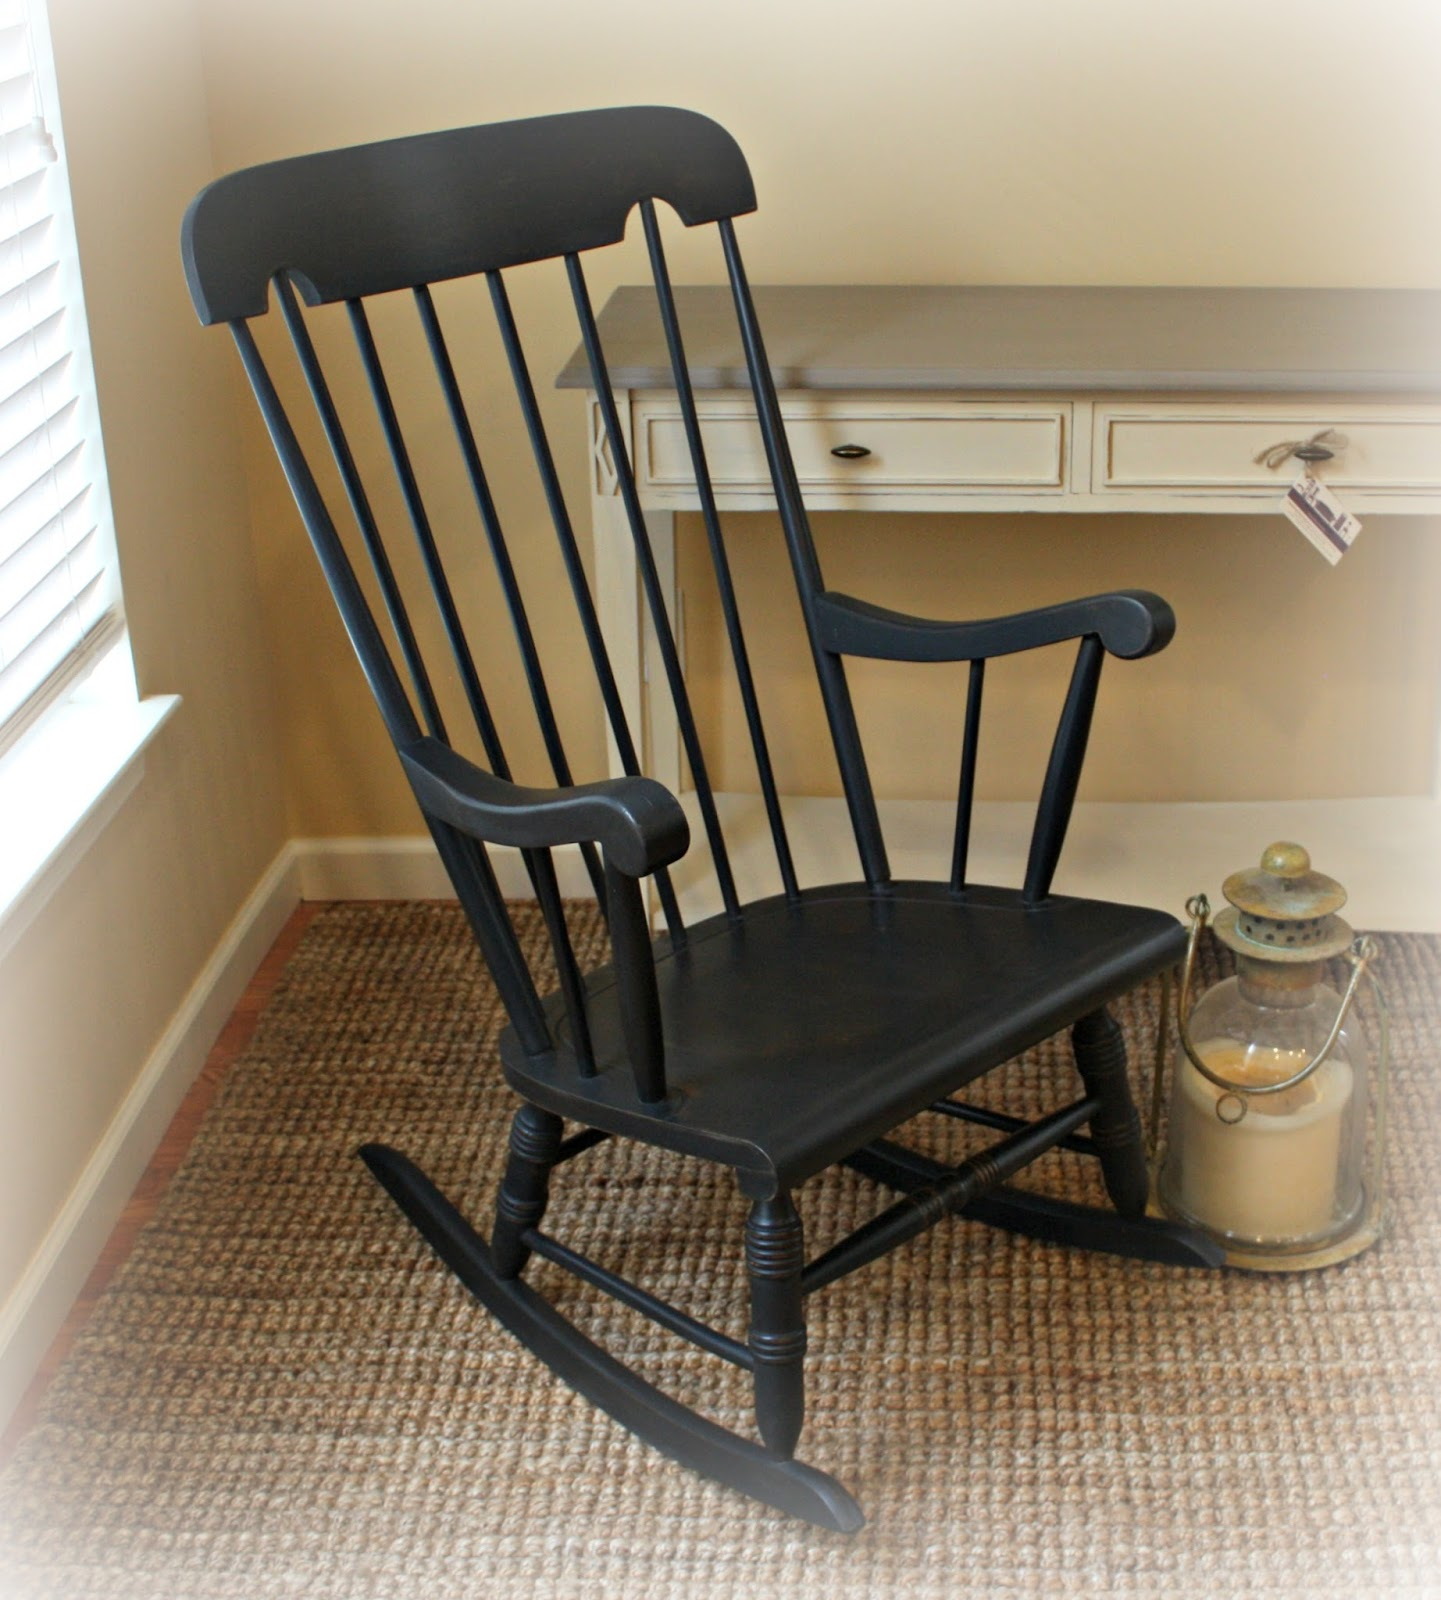 Rocking chair painted black